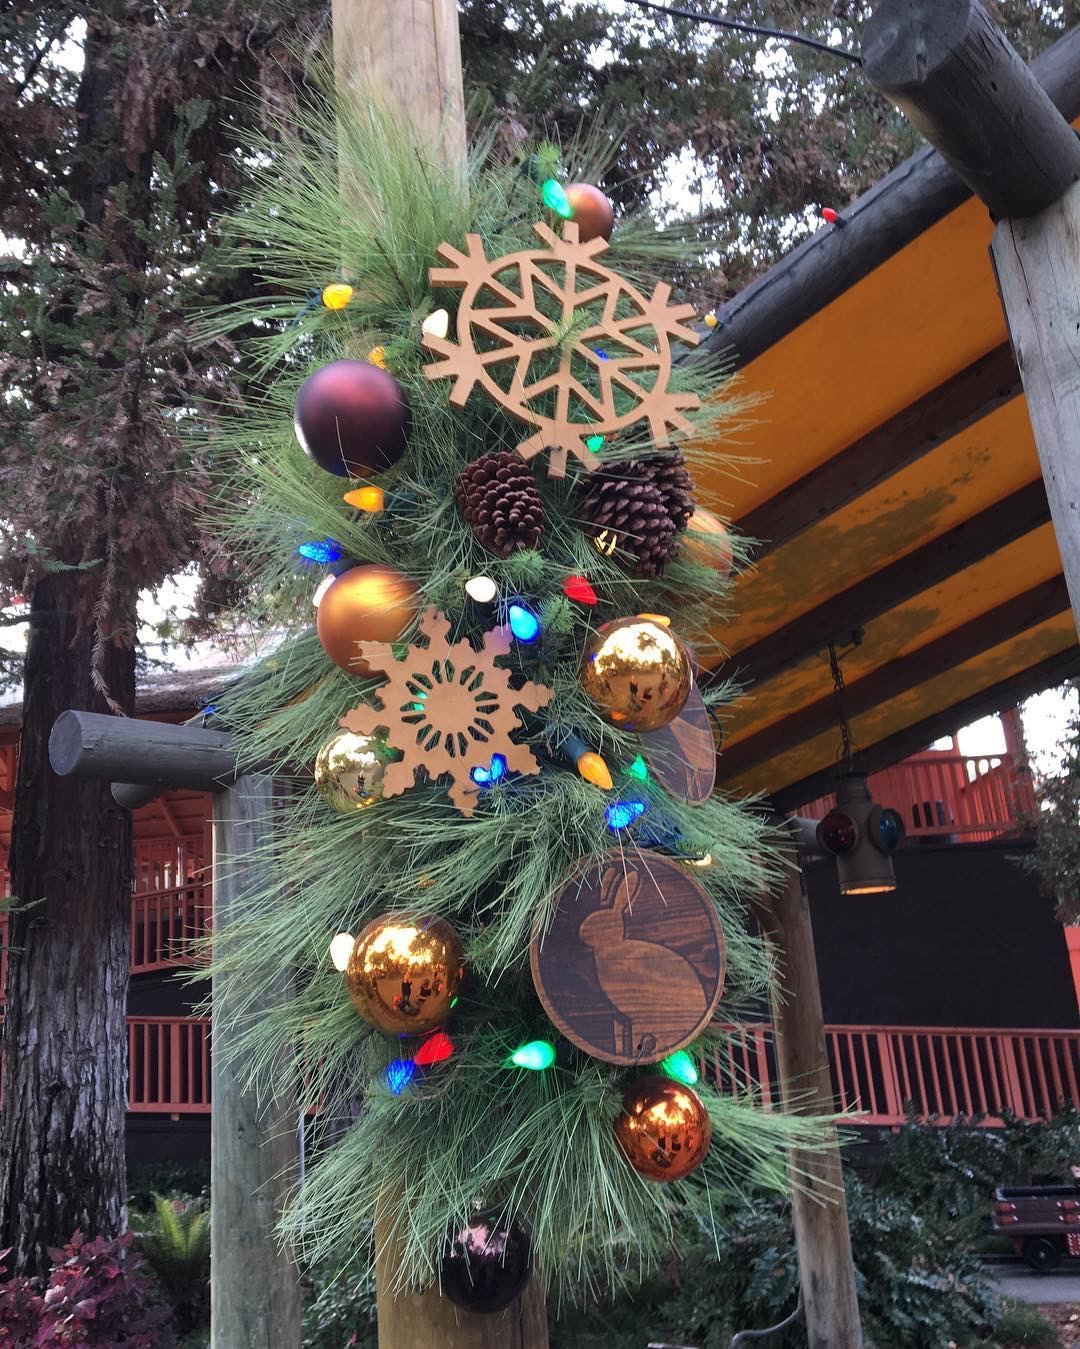 Knott's Merry Farm. #KnottsMerryFarm #KnottsBerryFarm #Knotts #Christmas #OrangeCounty #travel #themepark